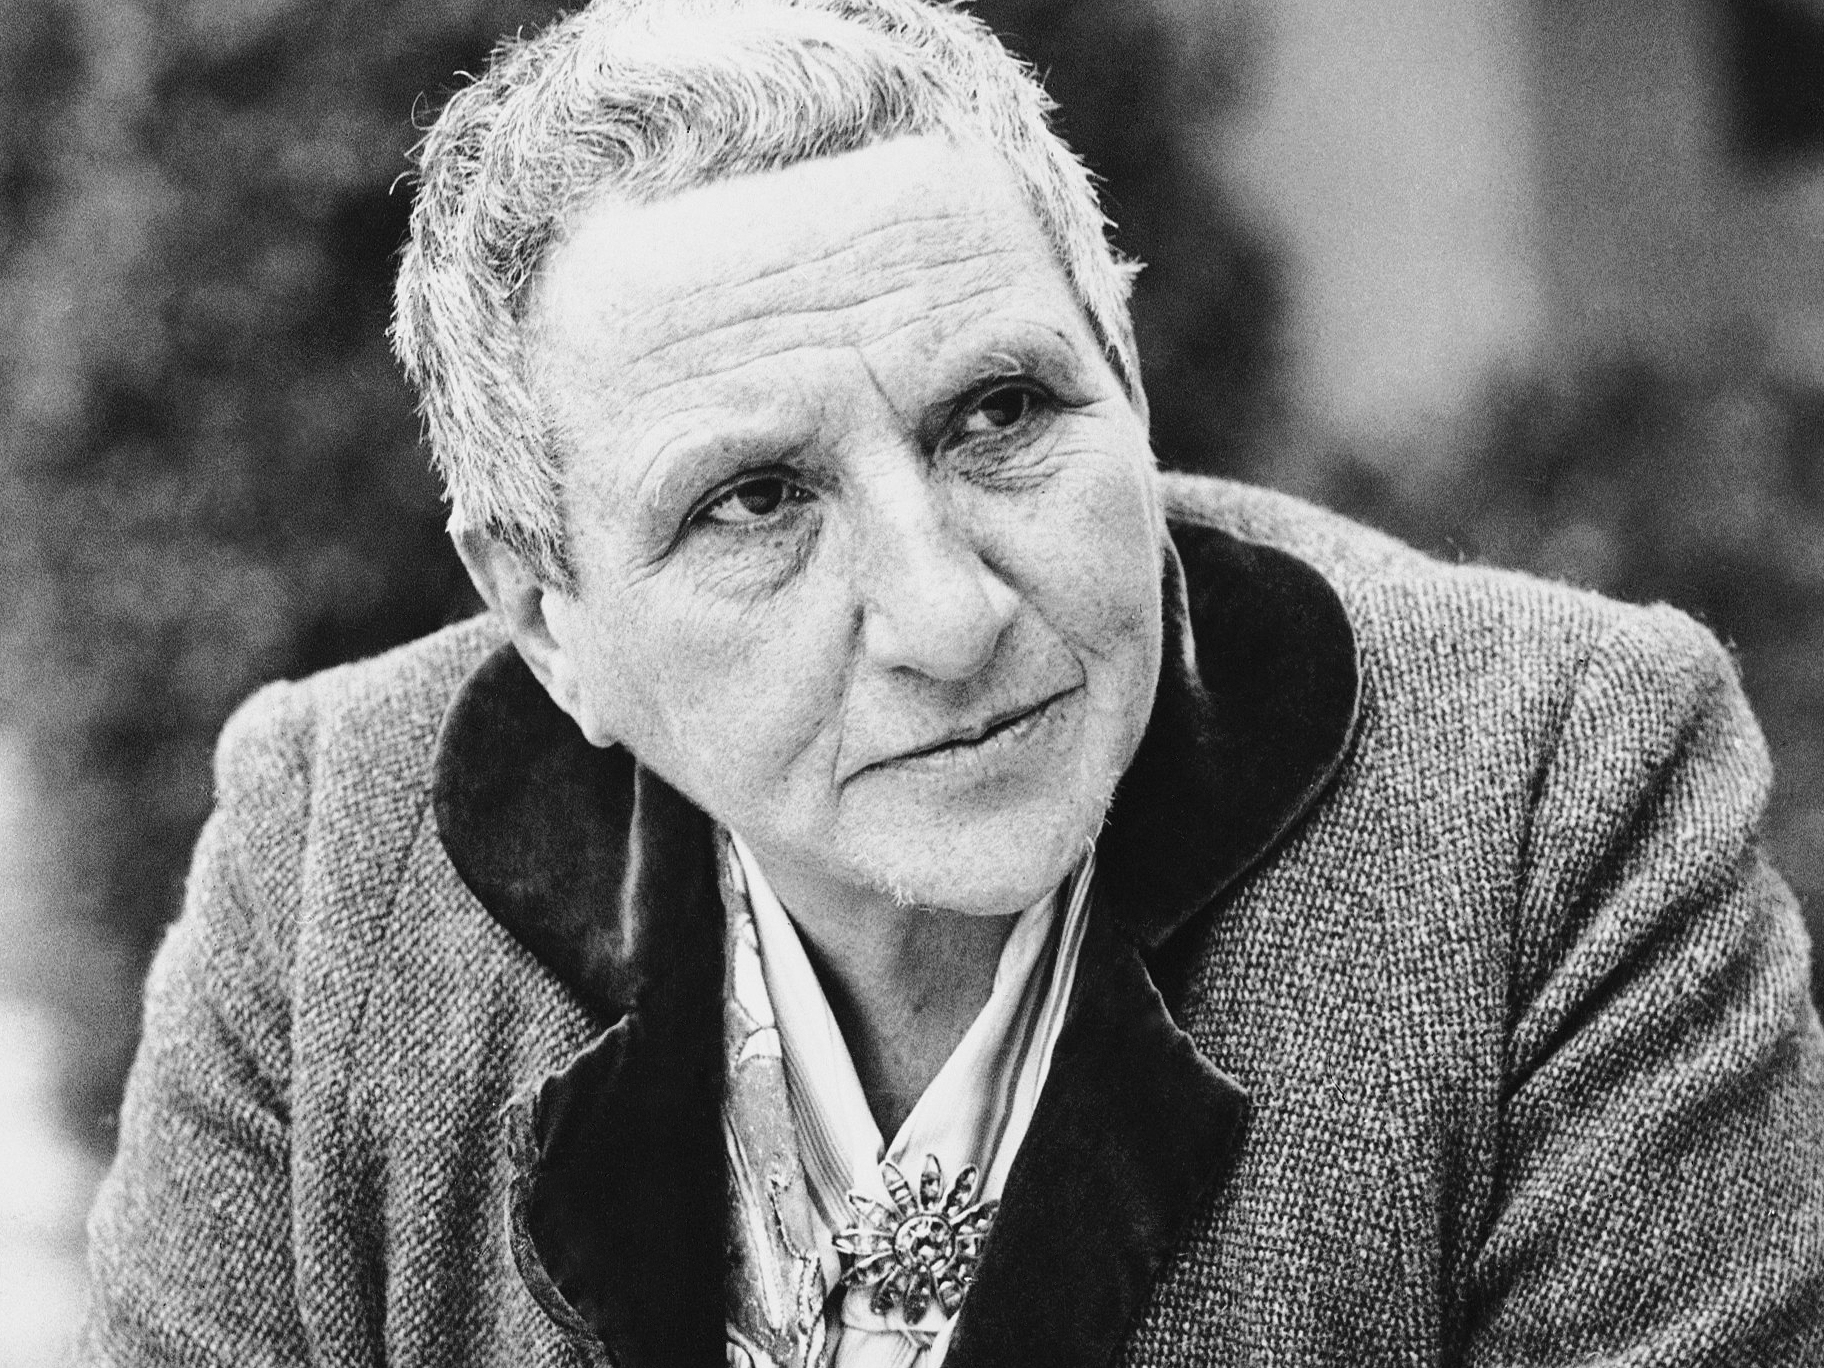 Gertrude Stein, pictured here in 1935, wrote another children's book titled To Do: A Book of Alphabets and Birthdays.